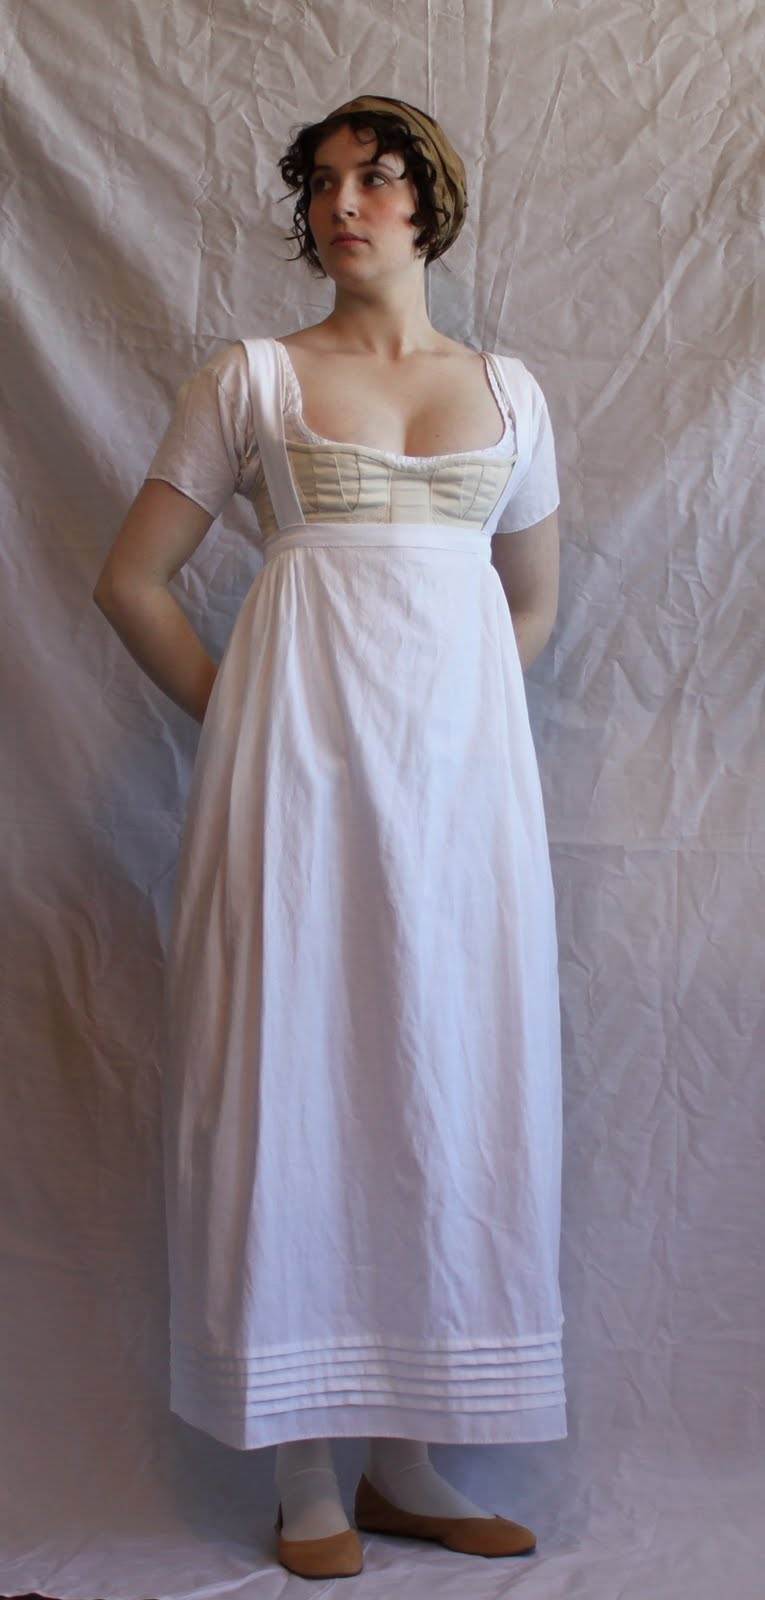 Diary of a Mantua Maker: Below the Gown